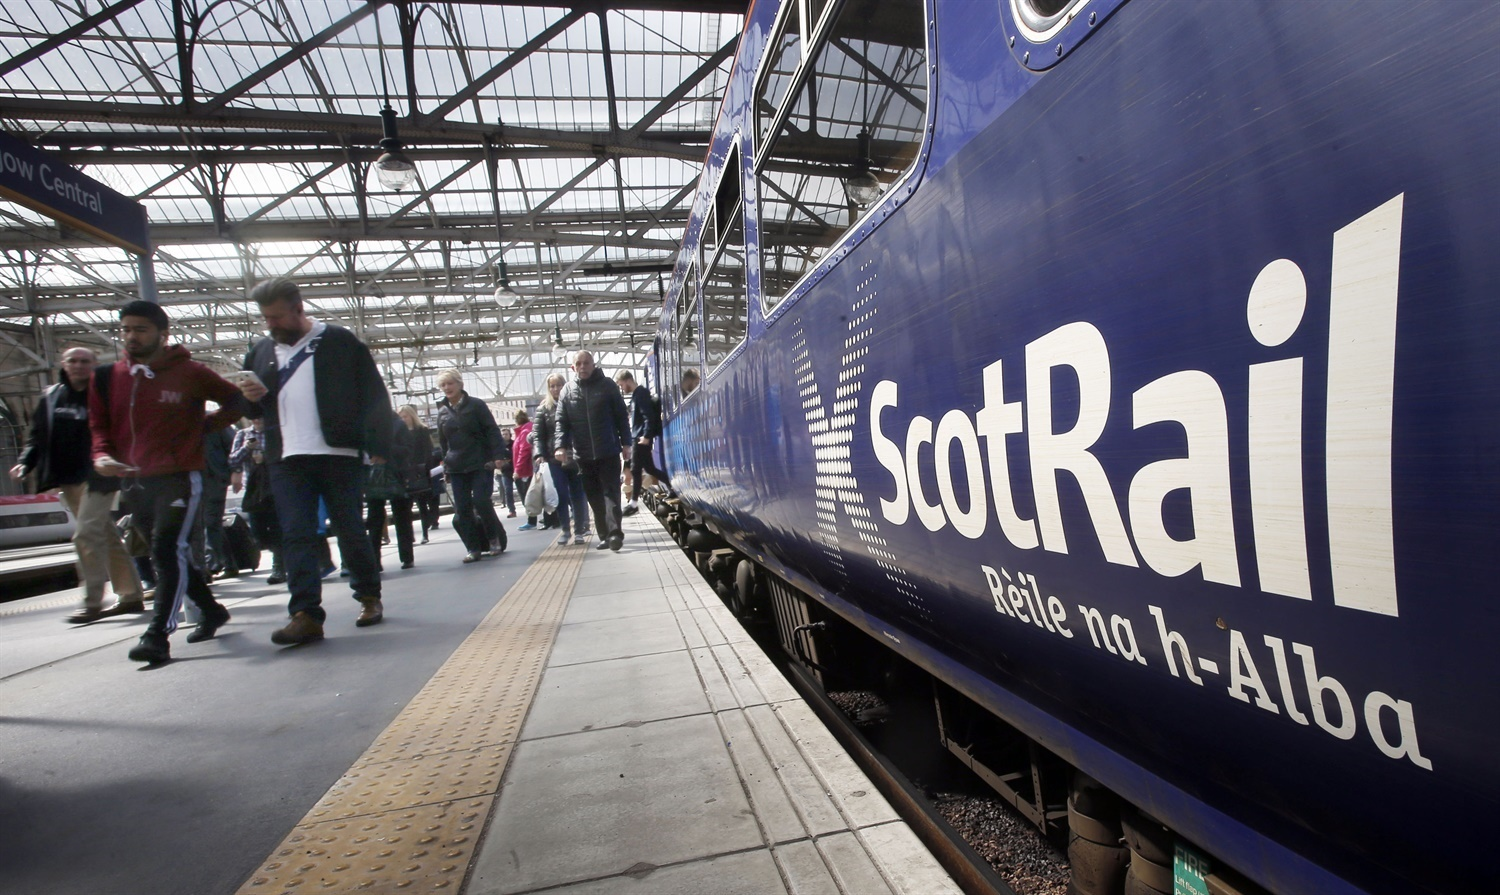 'Trade-offs' needed in planned Scottish rail investments, RDG says